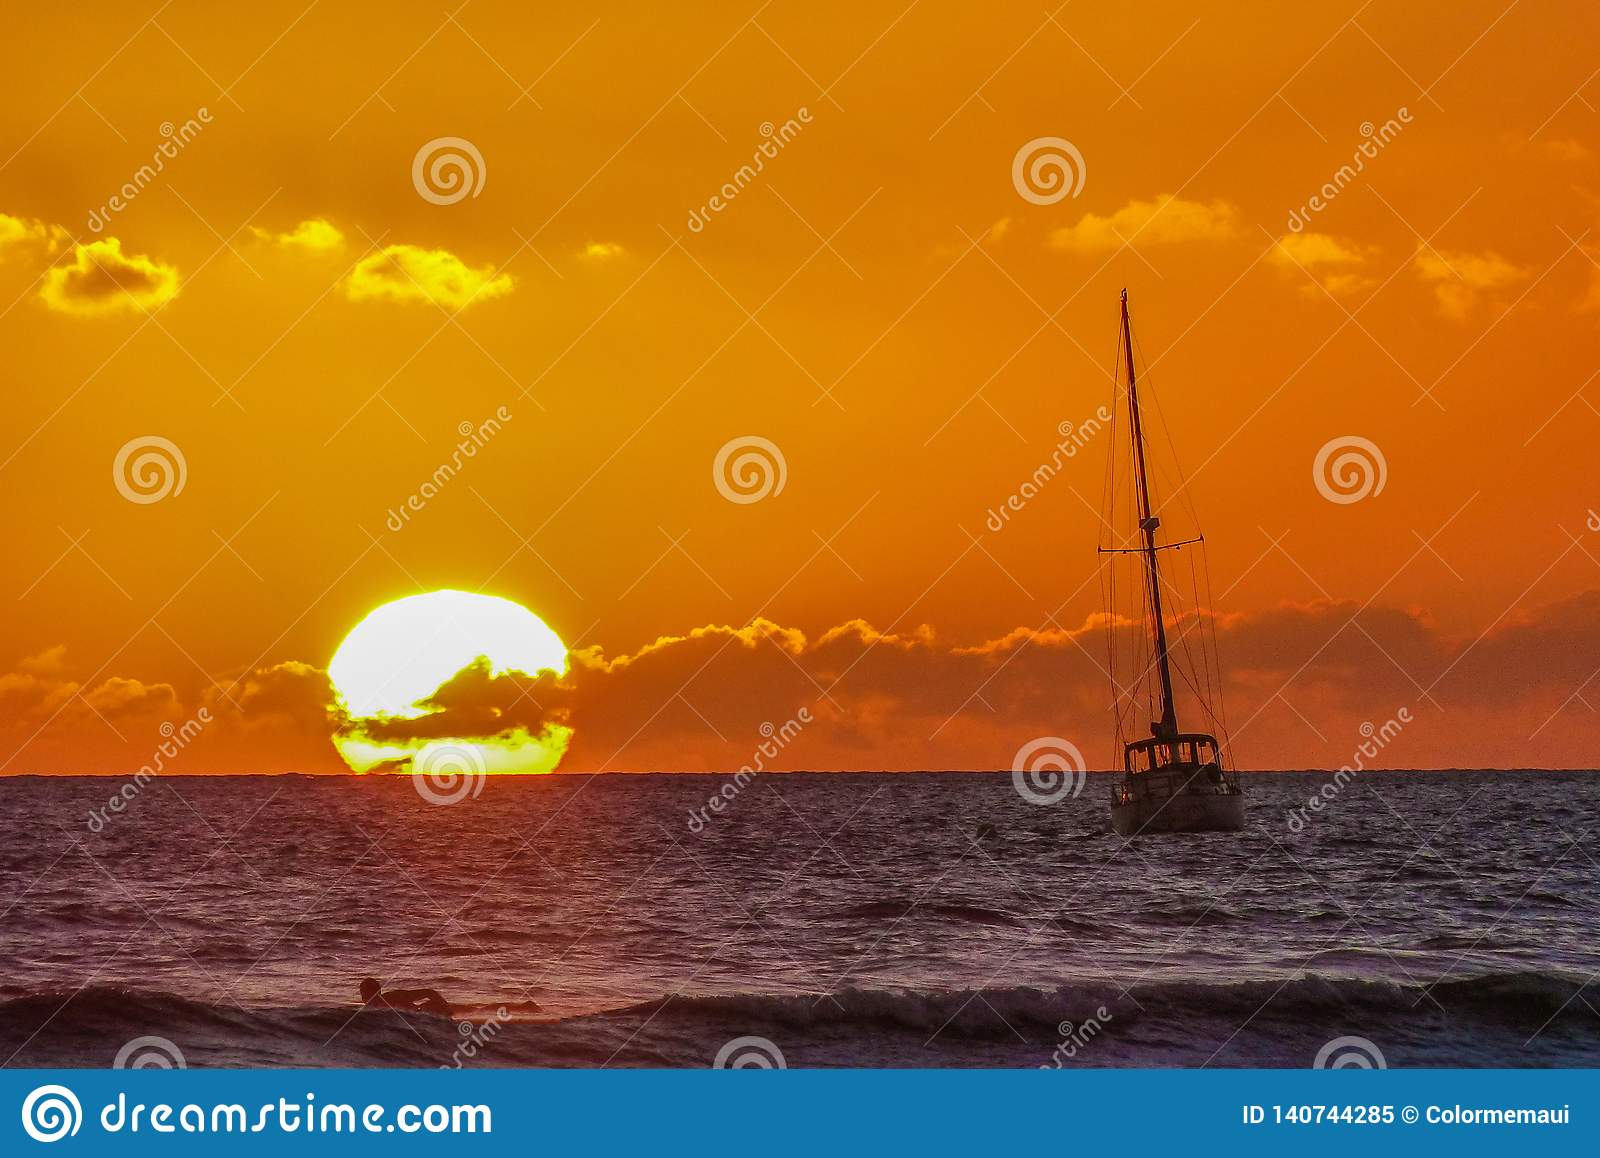 Sunset Over the Ocean with Sail Boat and Surfer in Maui HawaiiSunset